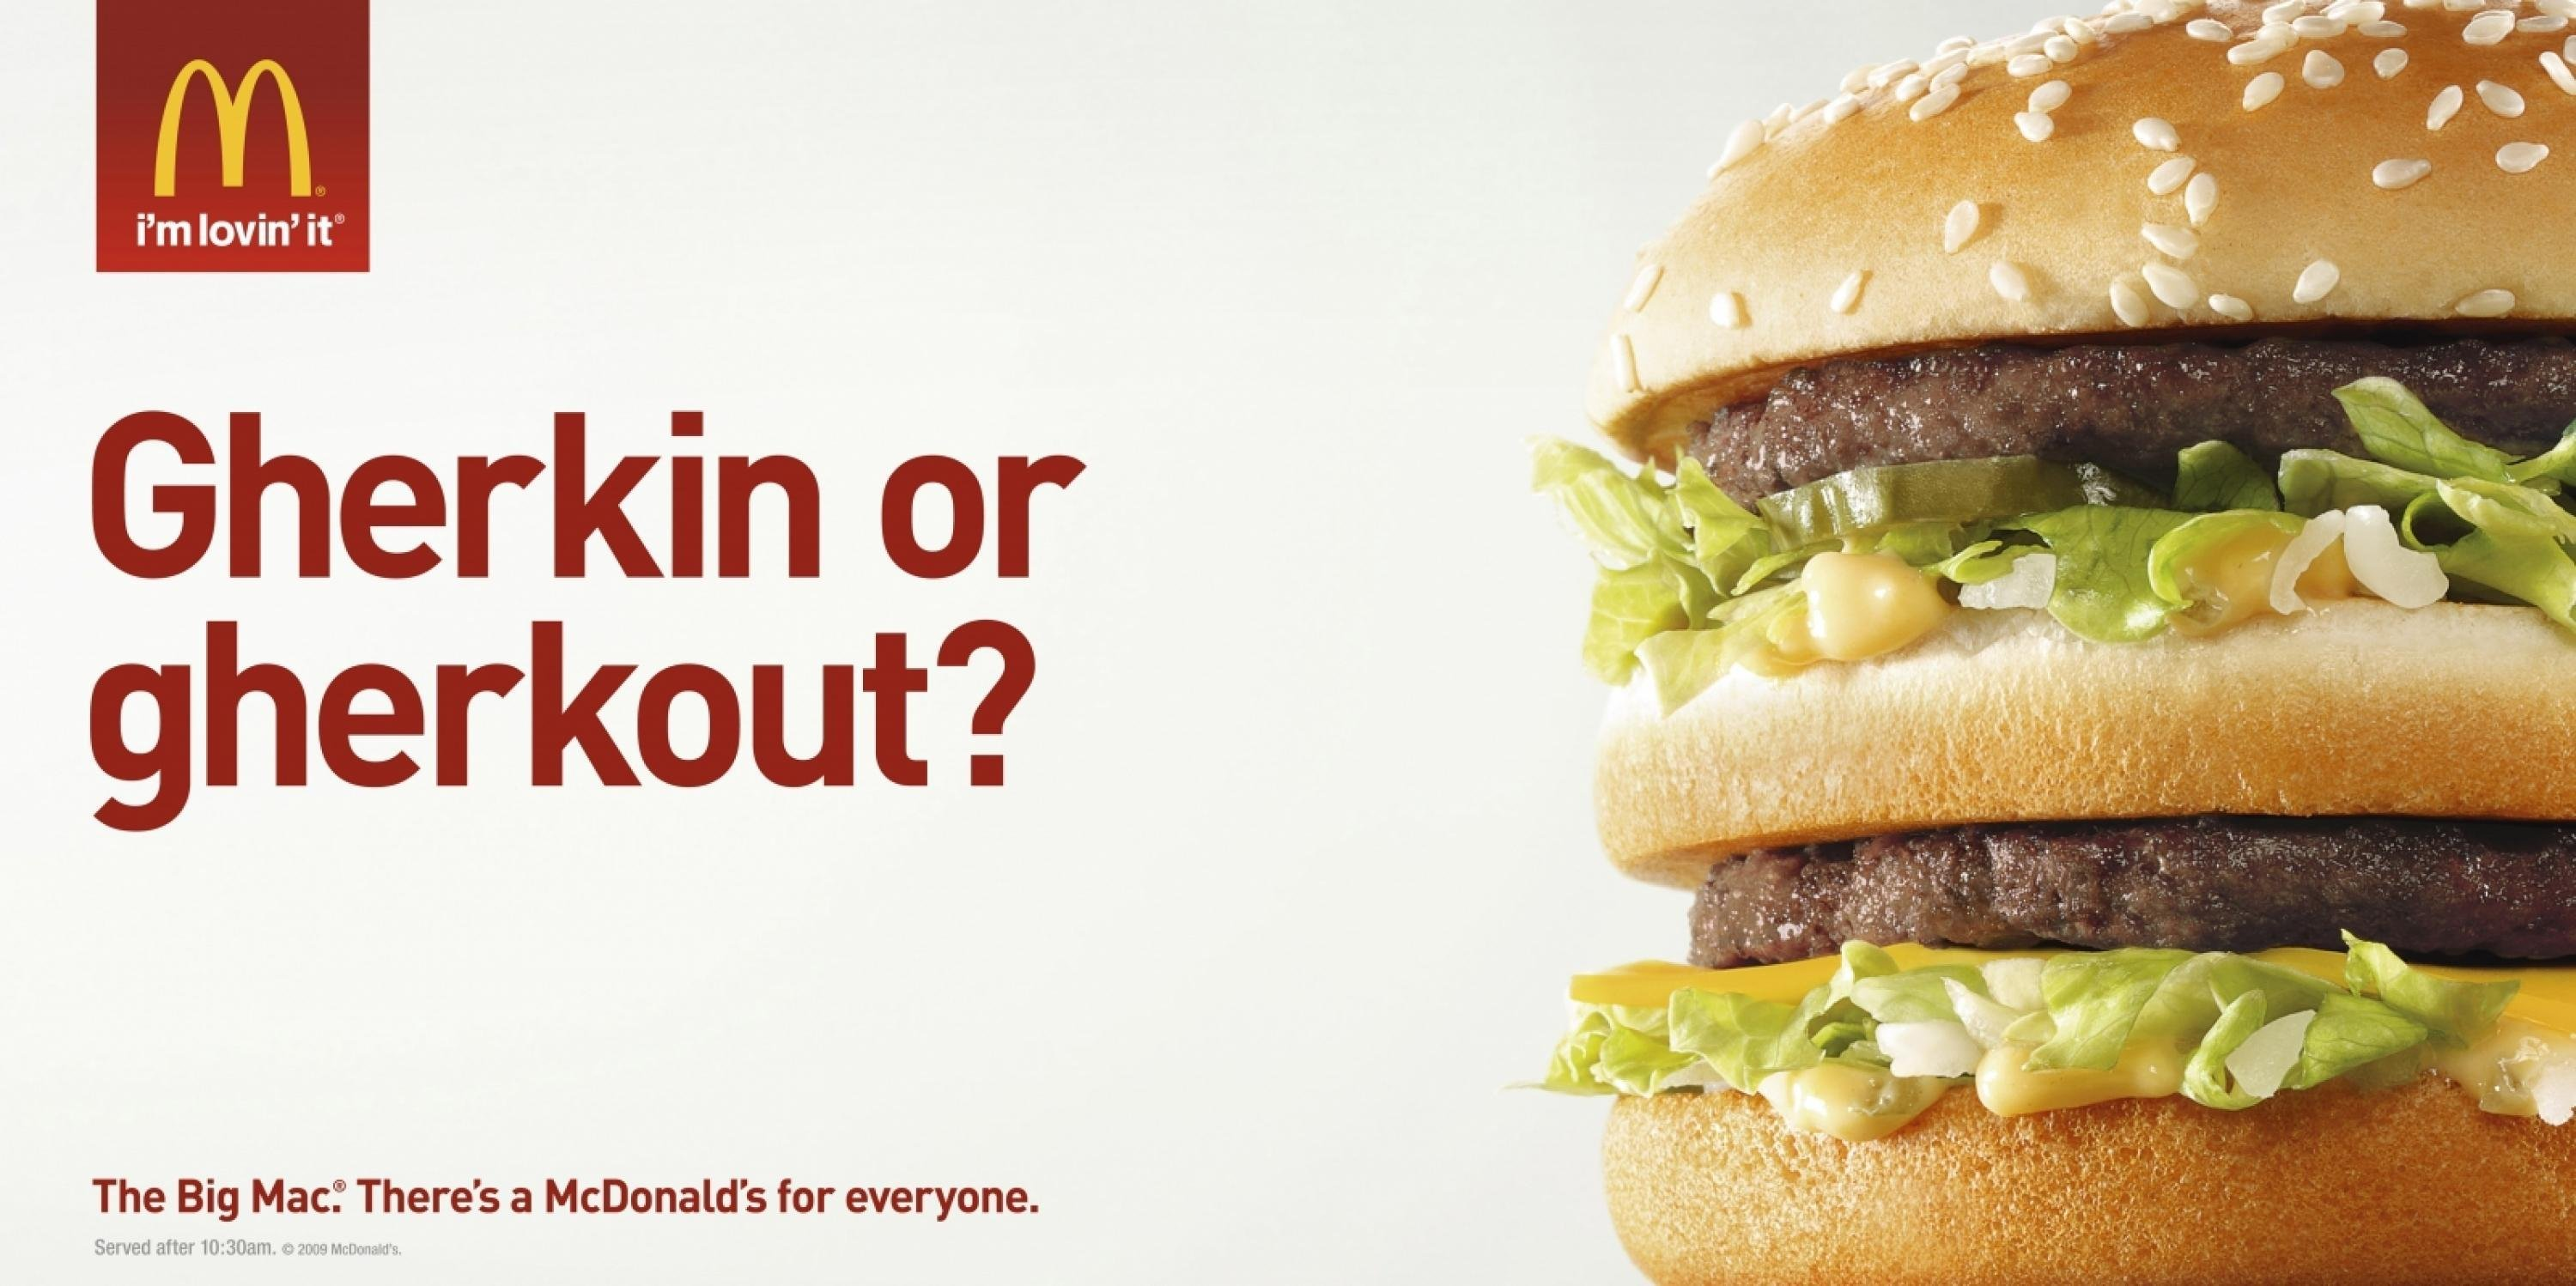 McDonald's Advertising Copywriting